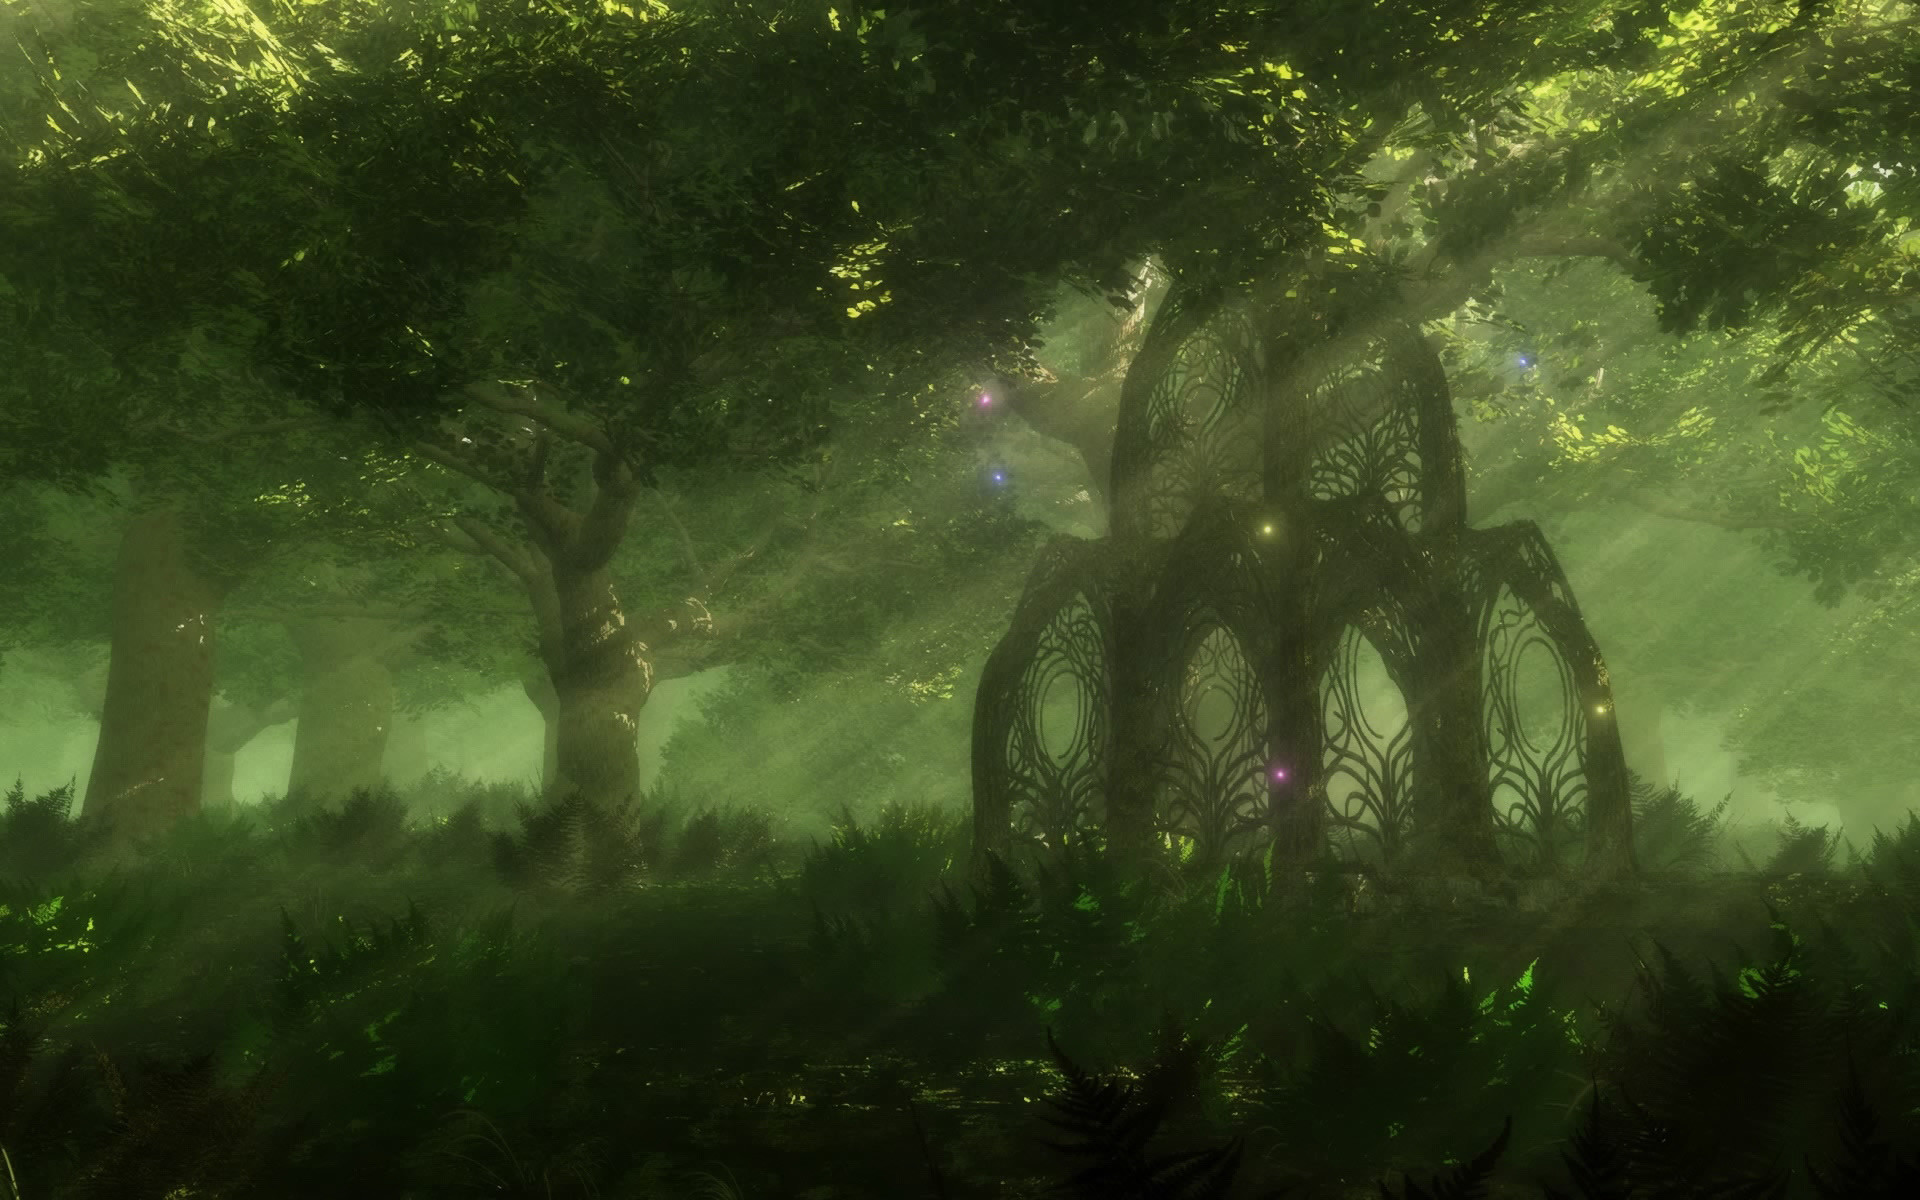 .com/anime/abstract/part 3/fantasy forest hd .